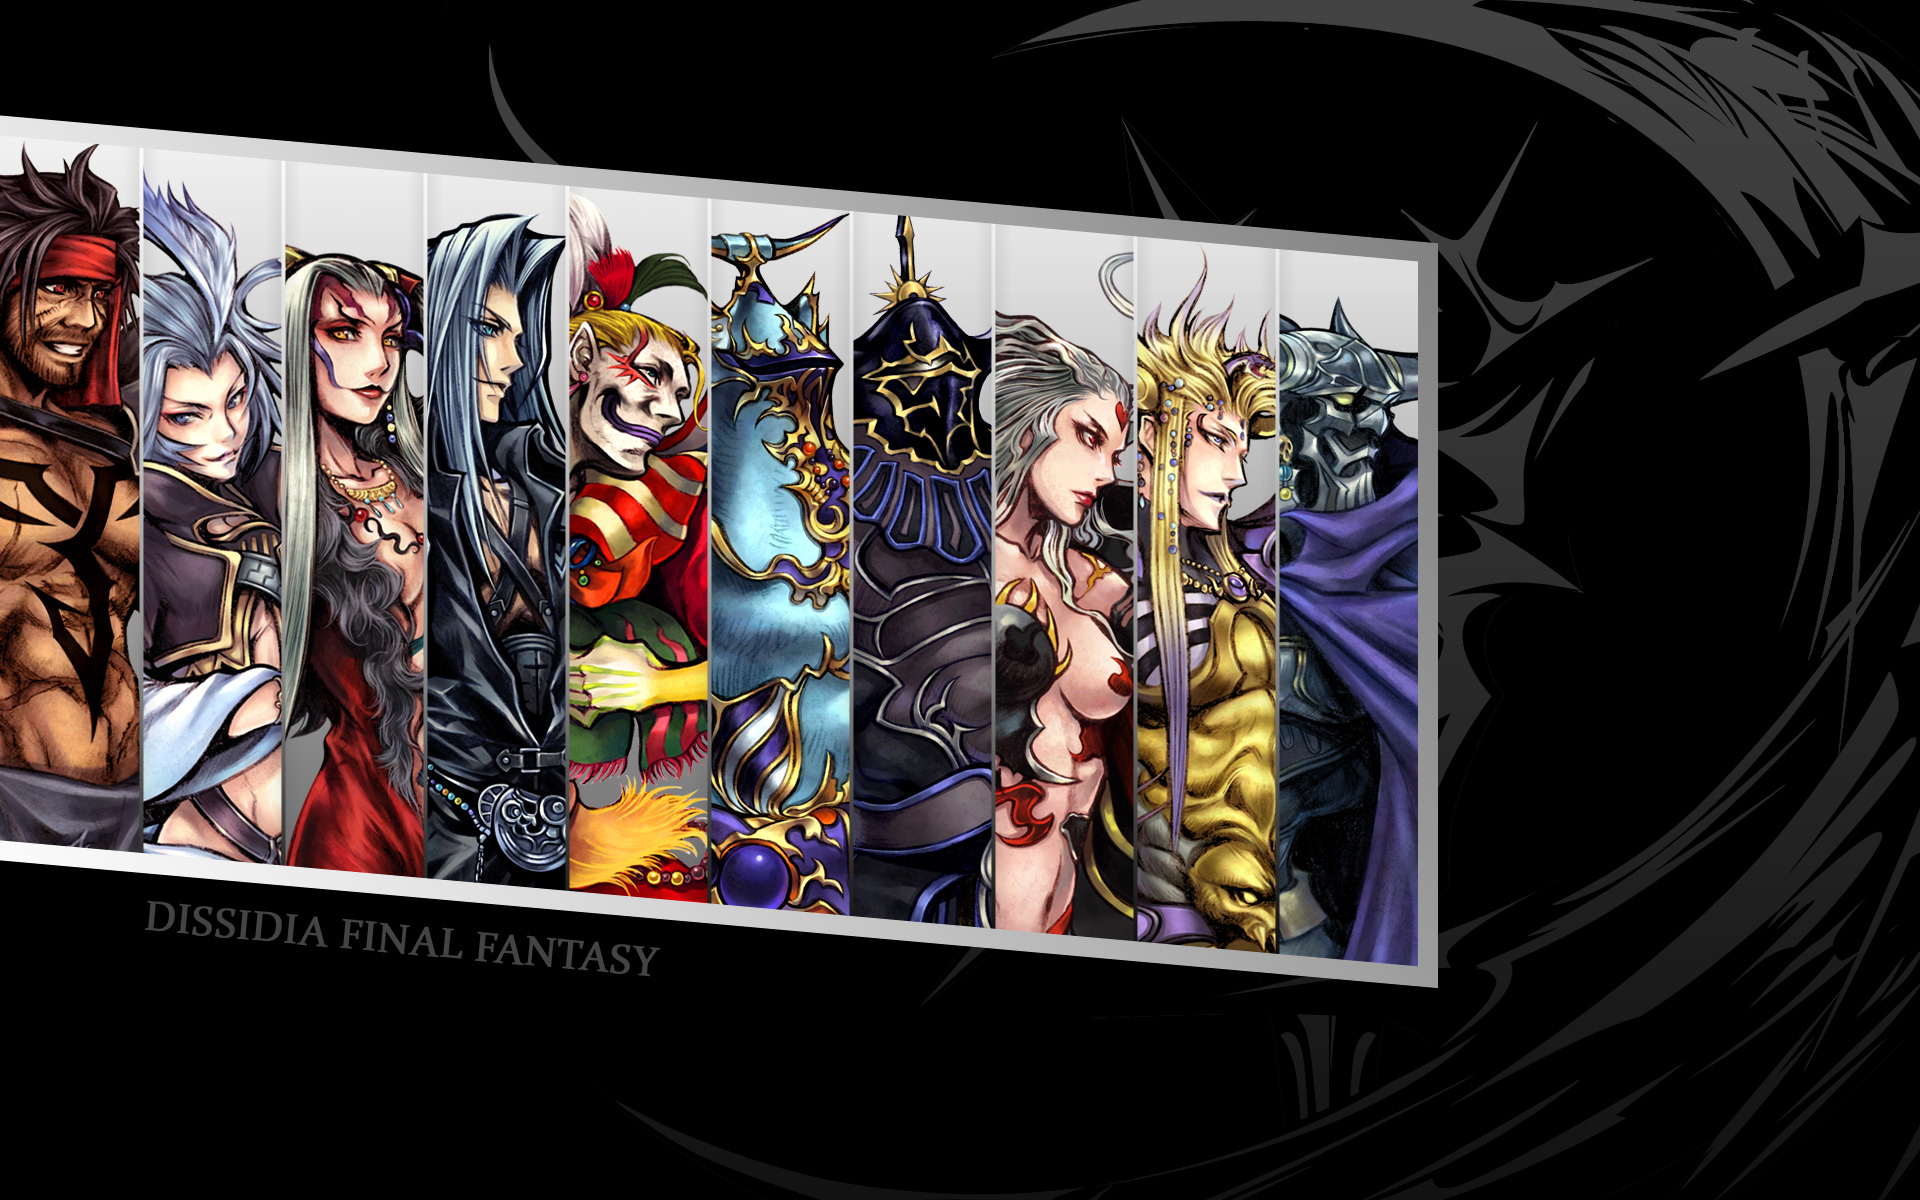 Images Dissidia Final Fantasy   Wallpaper   Dissidia Chaos 1610 1920x1200